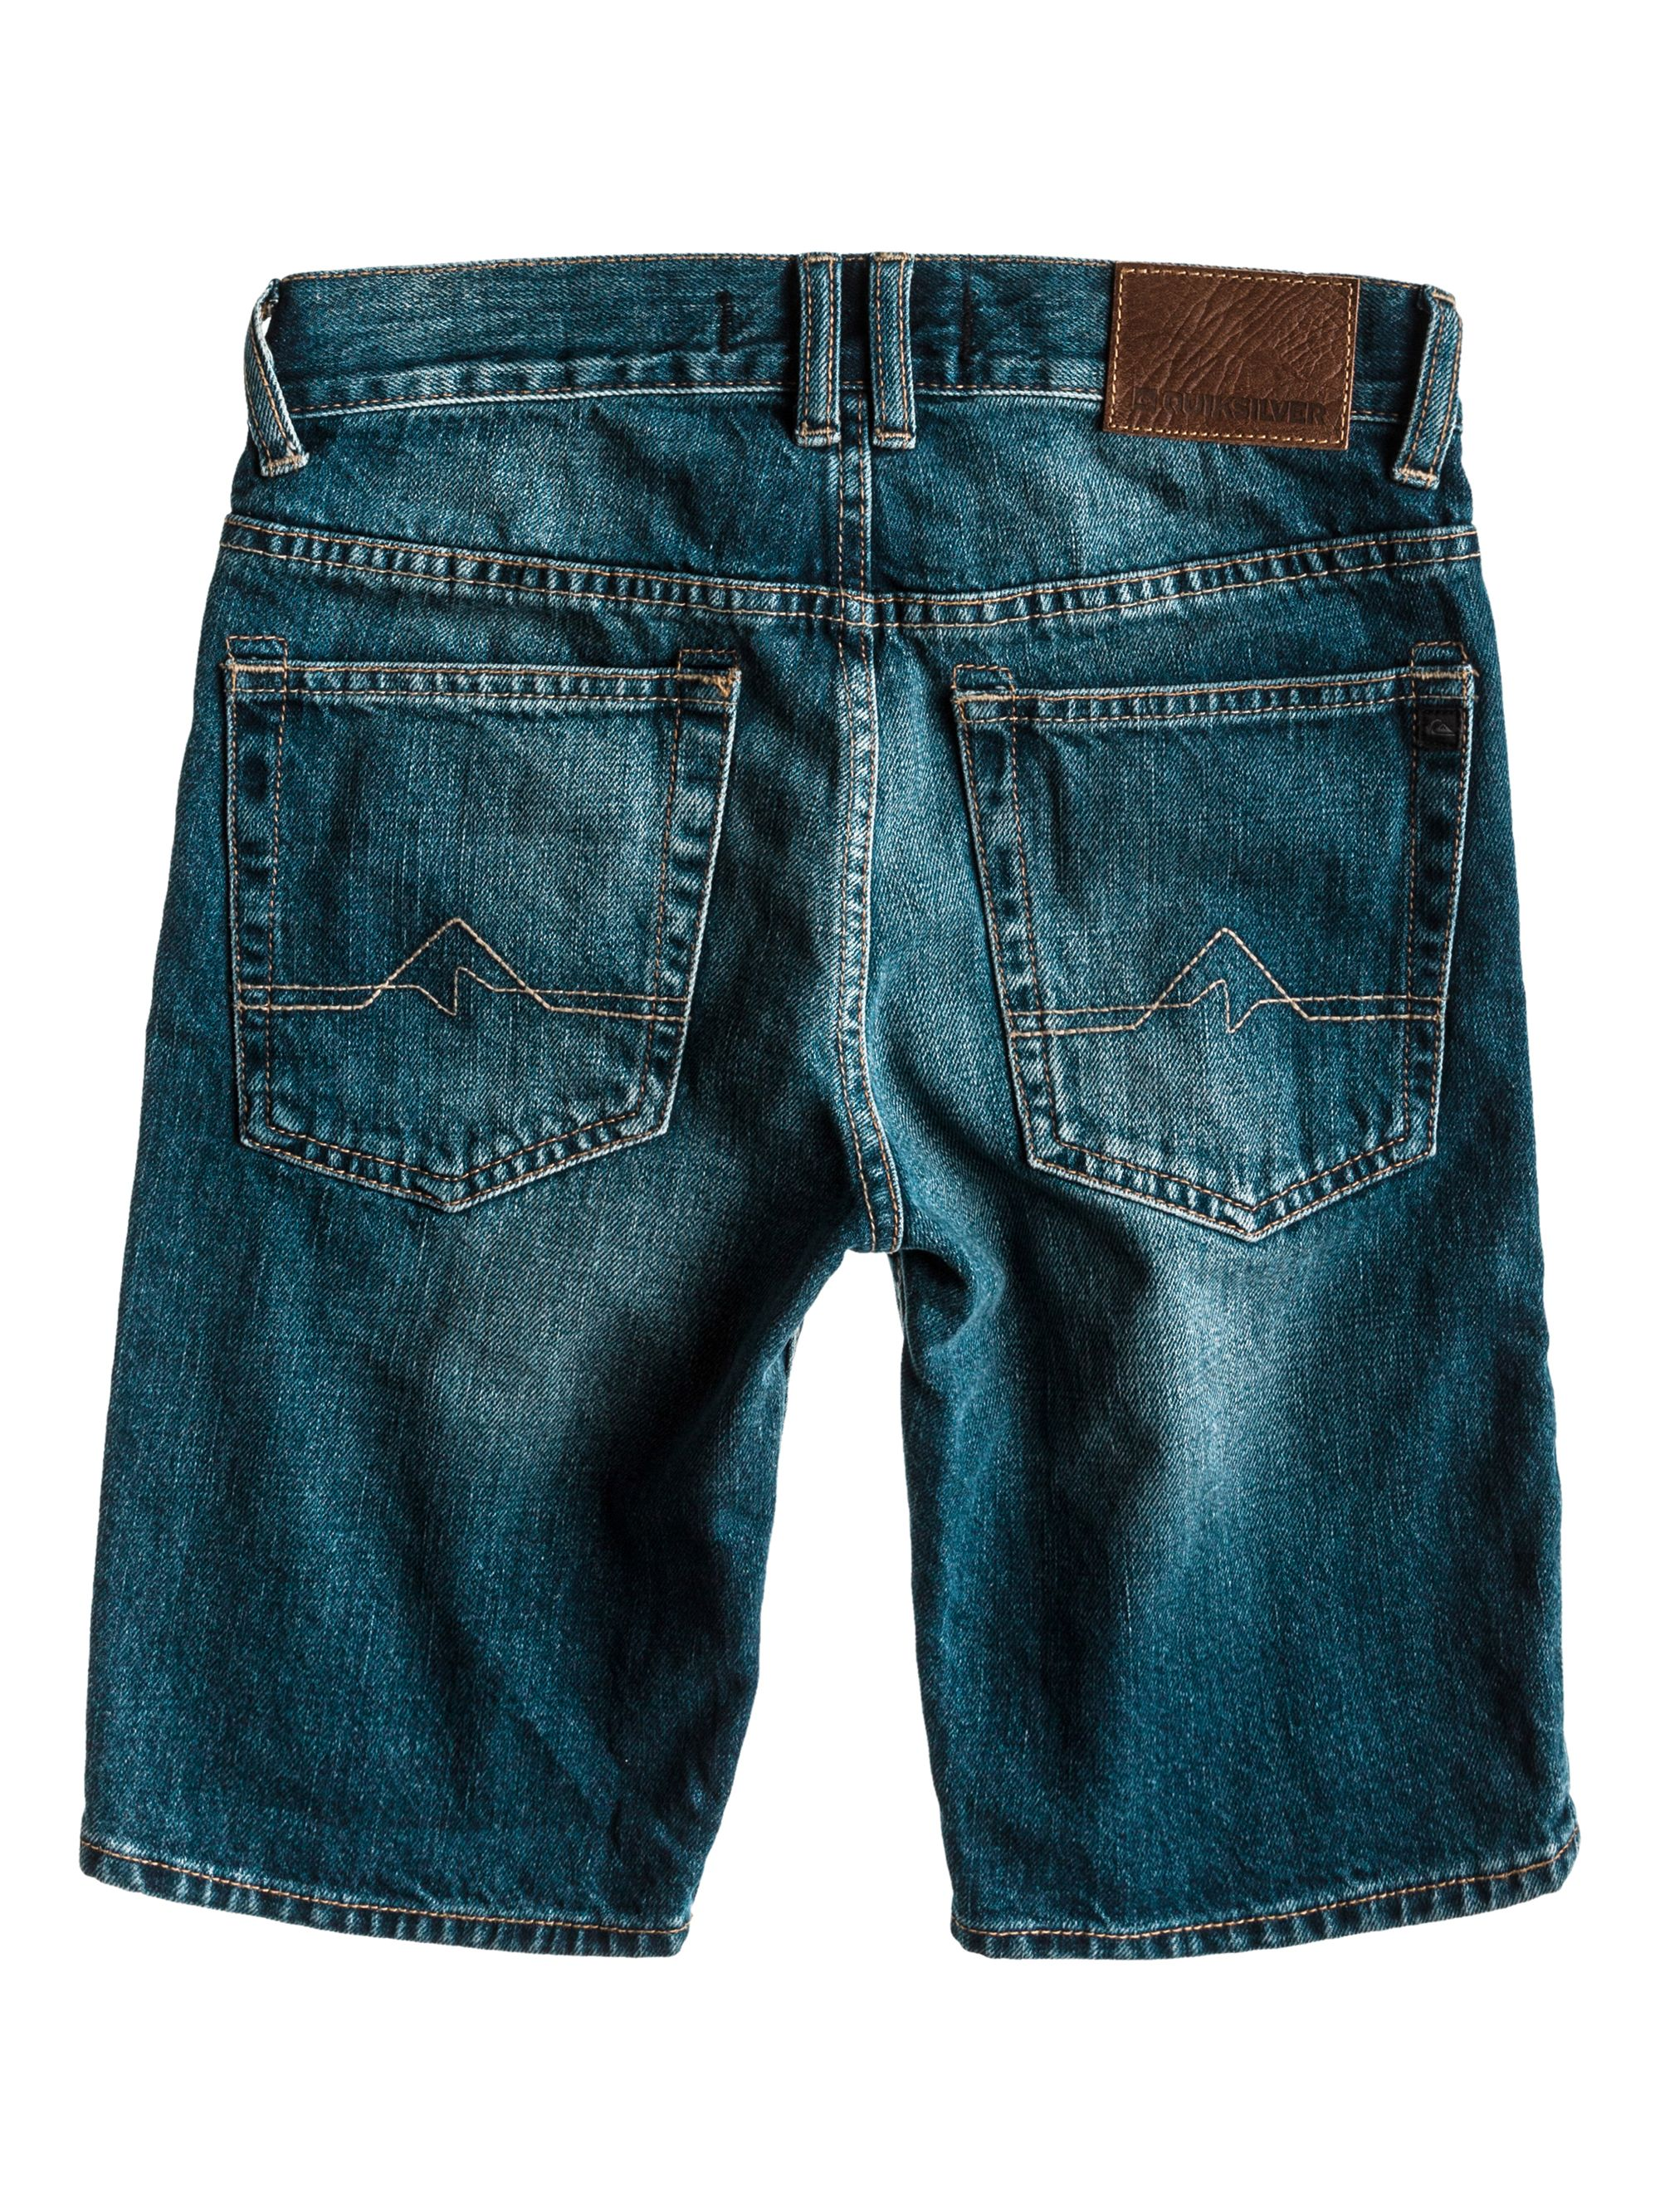 Boys matt ador denim short jeans